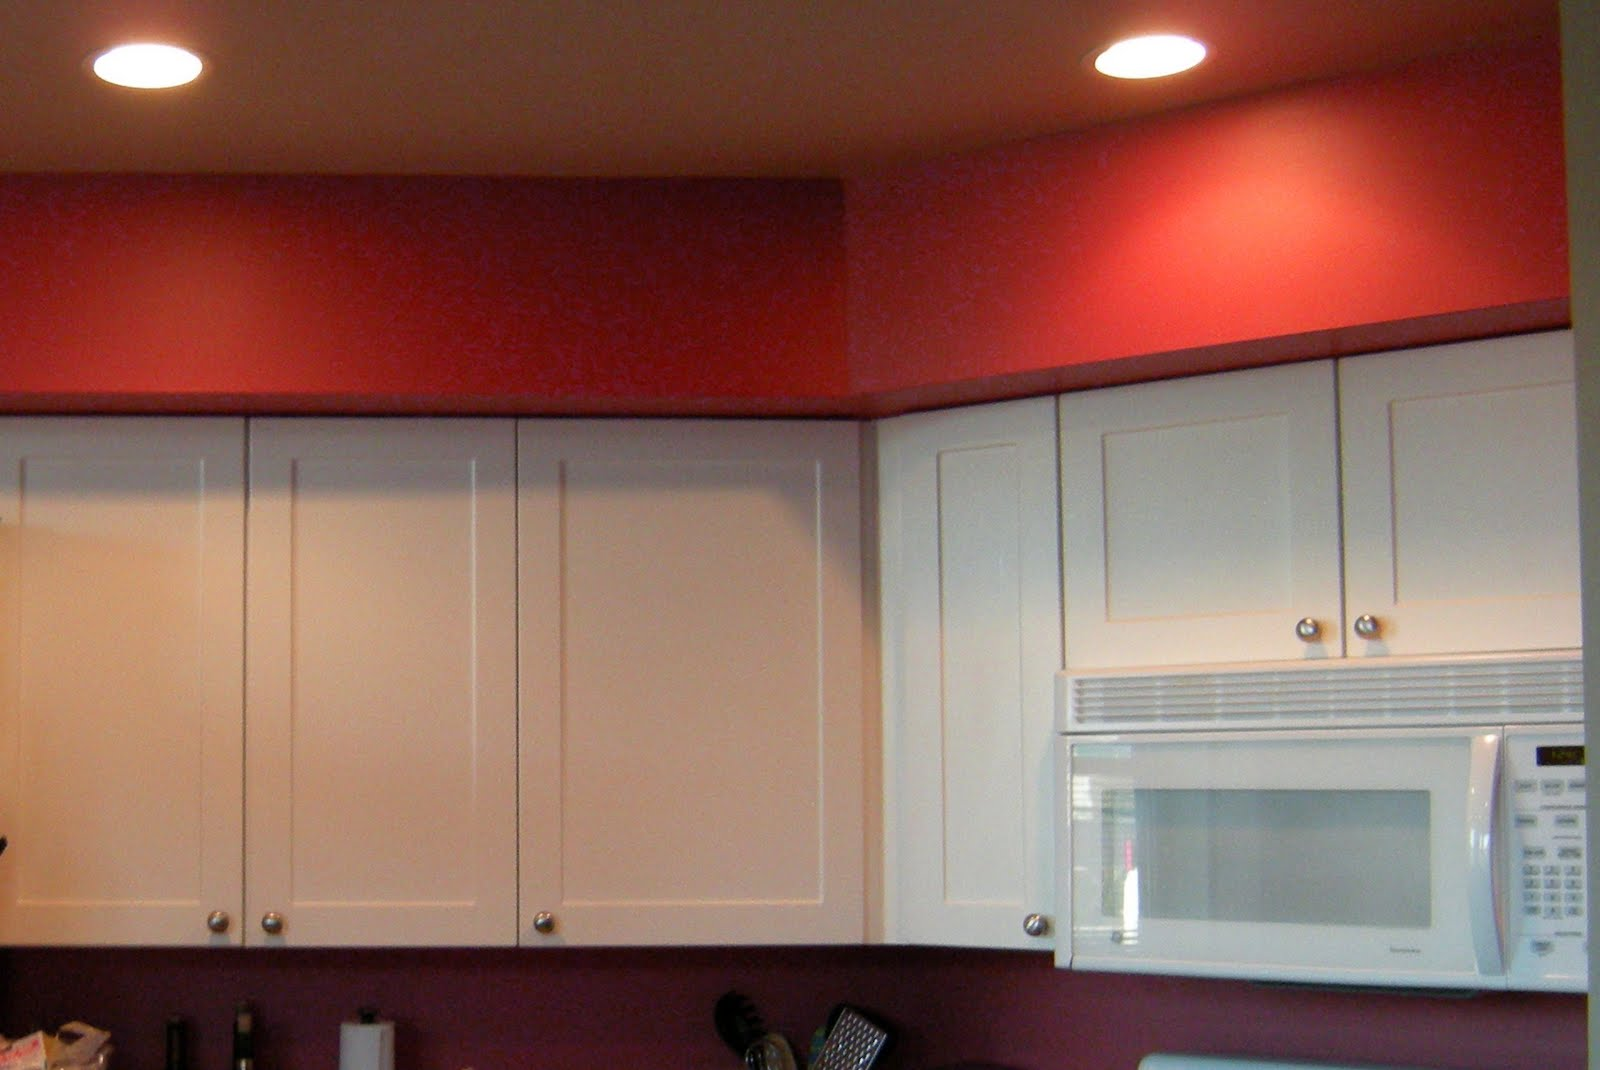 benjamin moore moroccan spice paint - Moroccan Red Paint